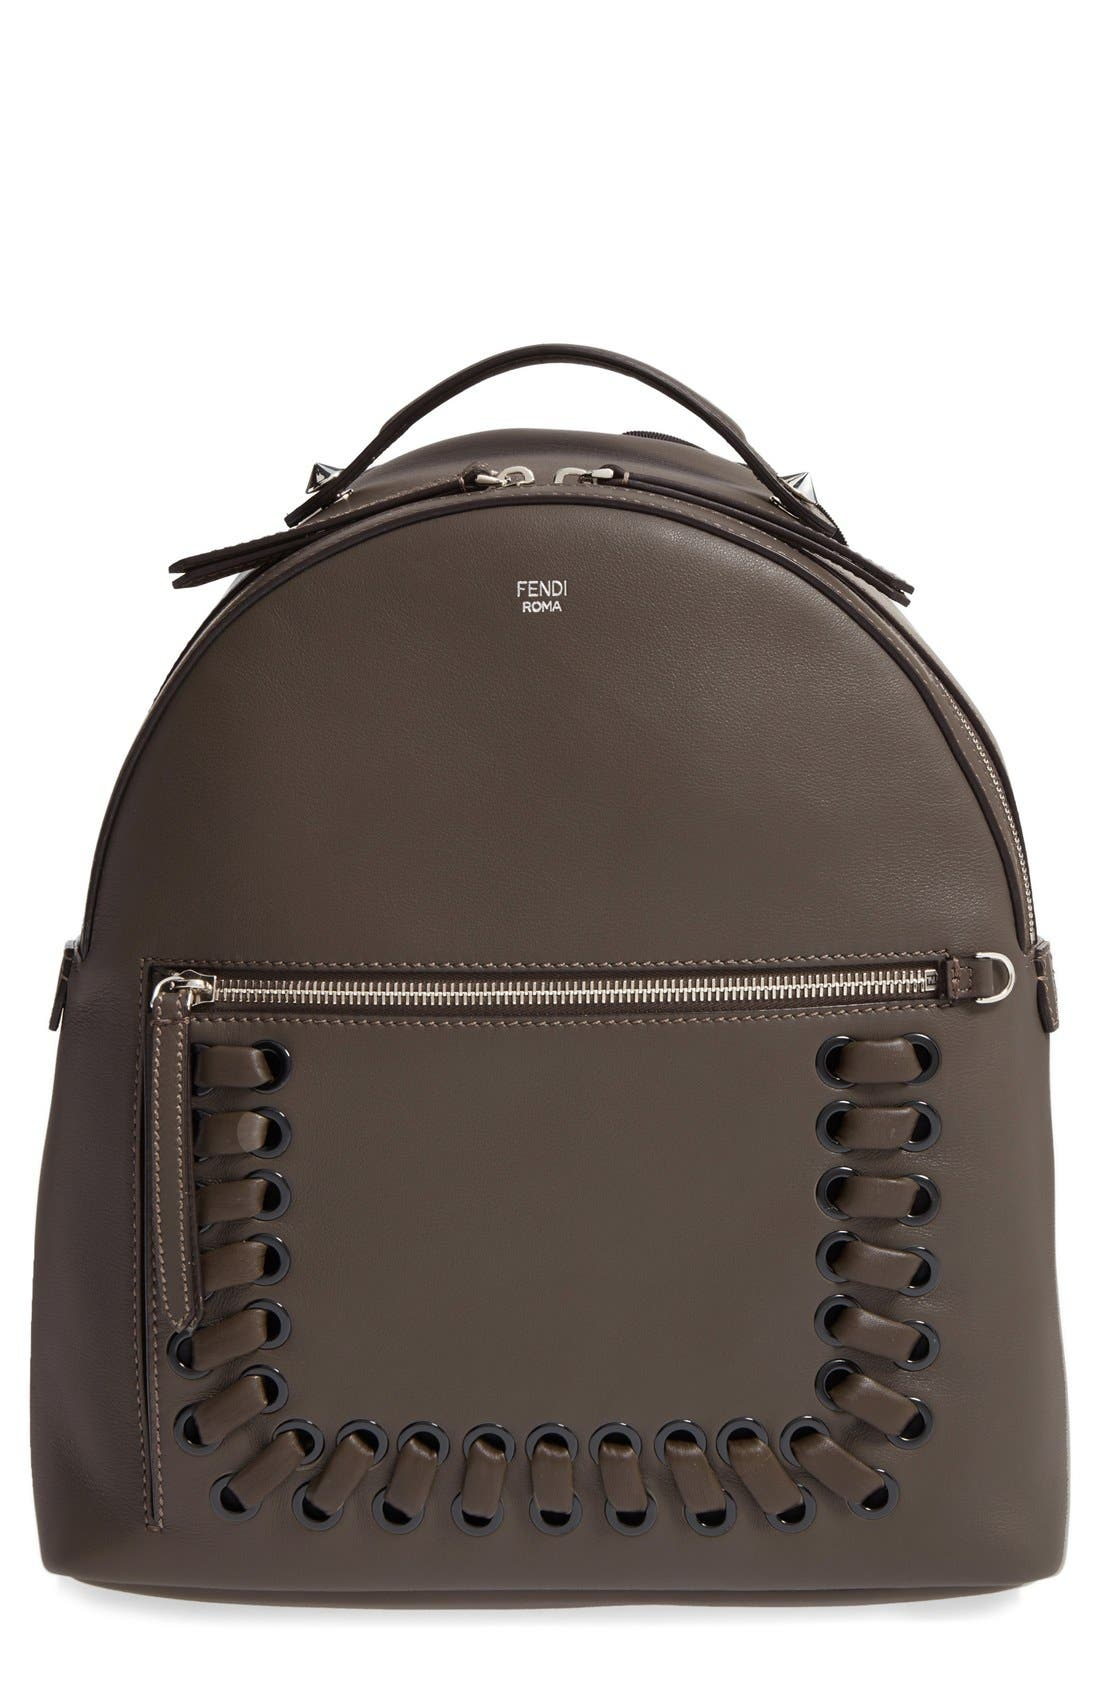 FENDI Calfskin Leather Backpack